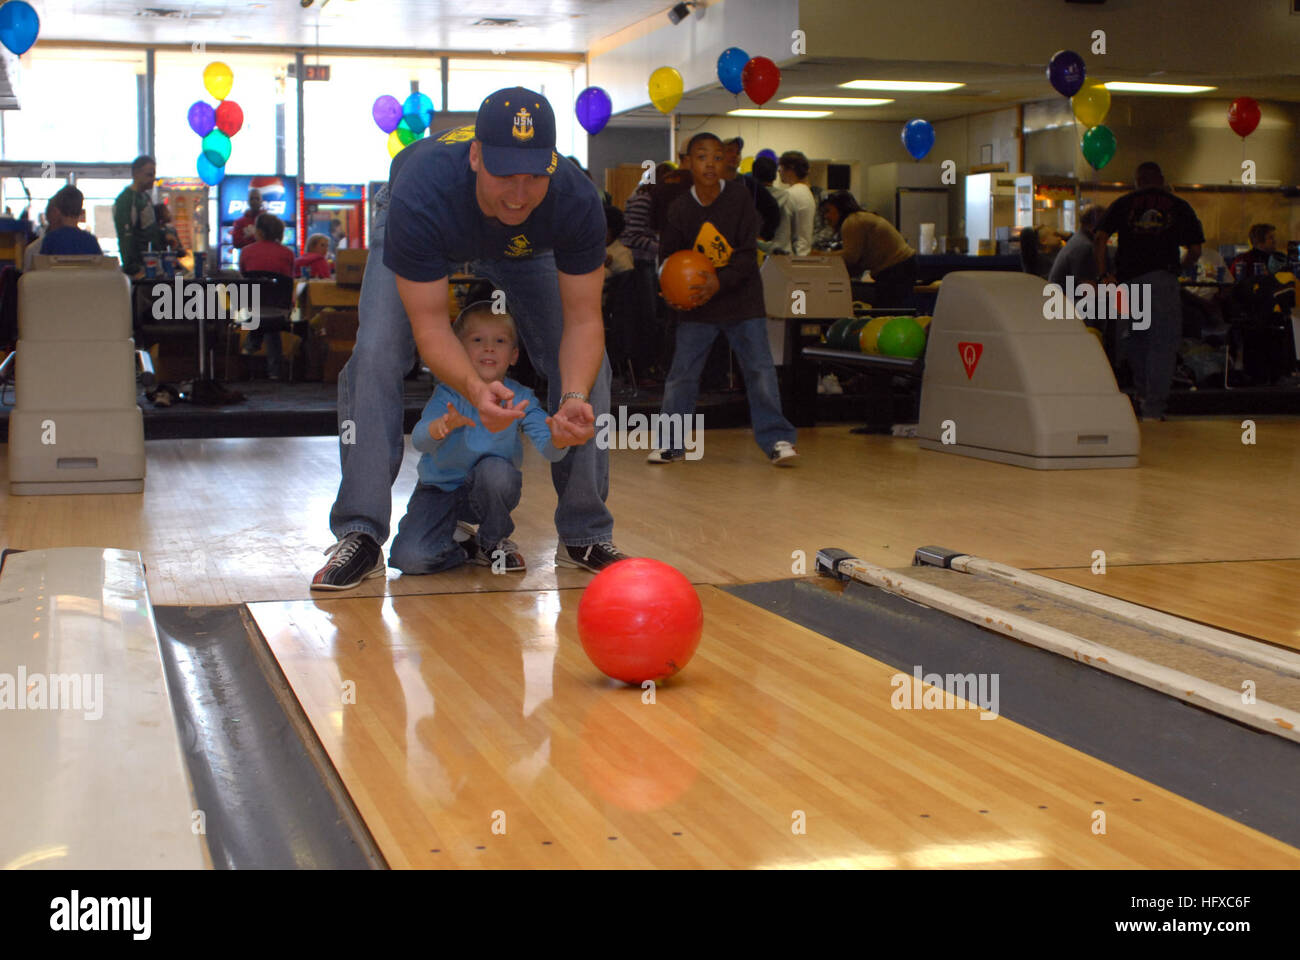 Amf Bowling Stock Photos & Amf Bowling Stock Images - Alamy